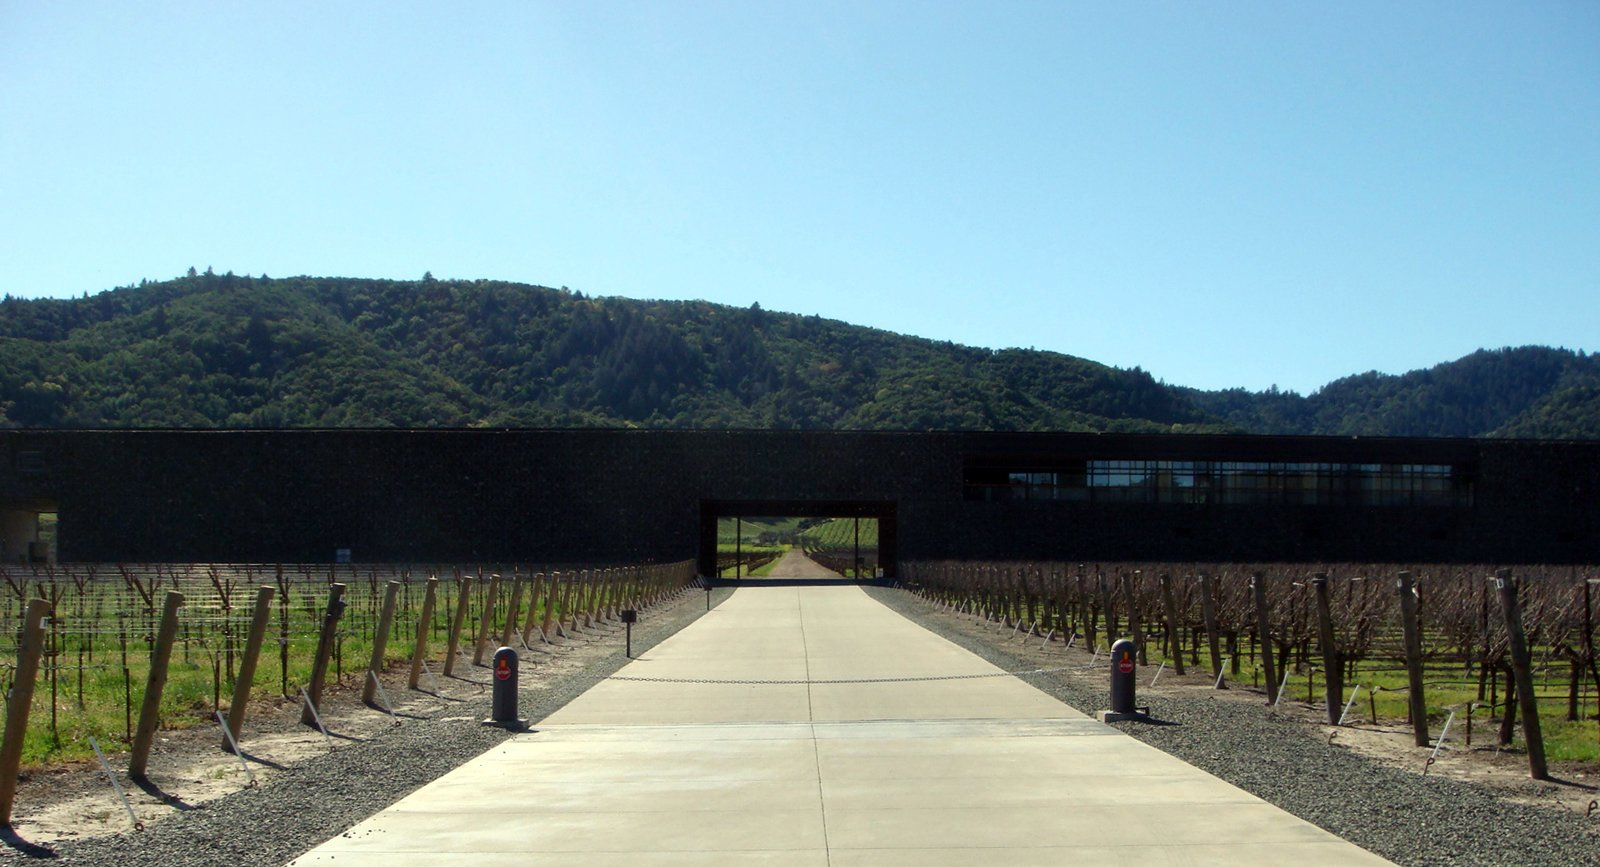 The Stealth Winery Dwell